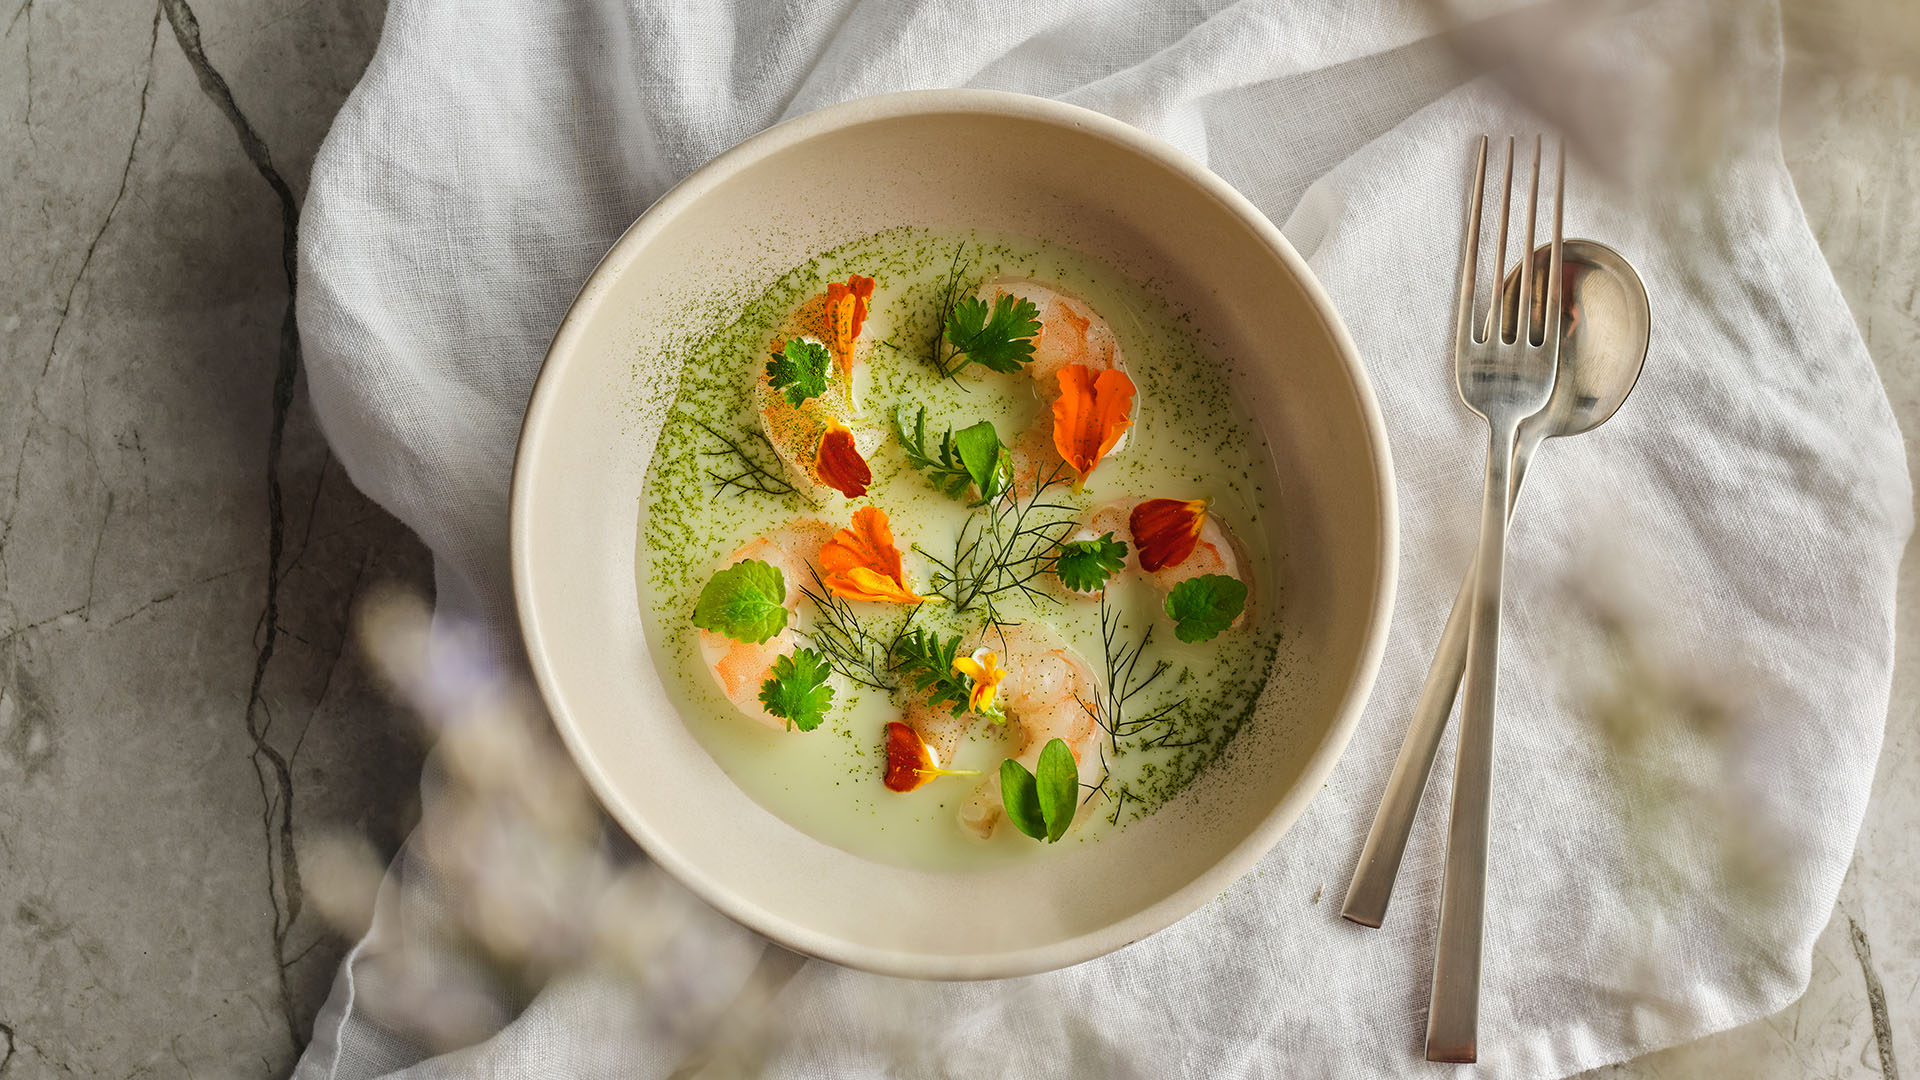 Overhead shot of chilled shrimp in a cream coloured round bowl next to utensils.